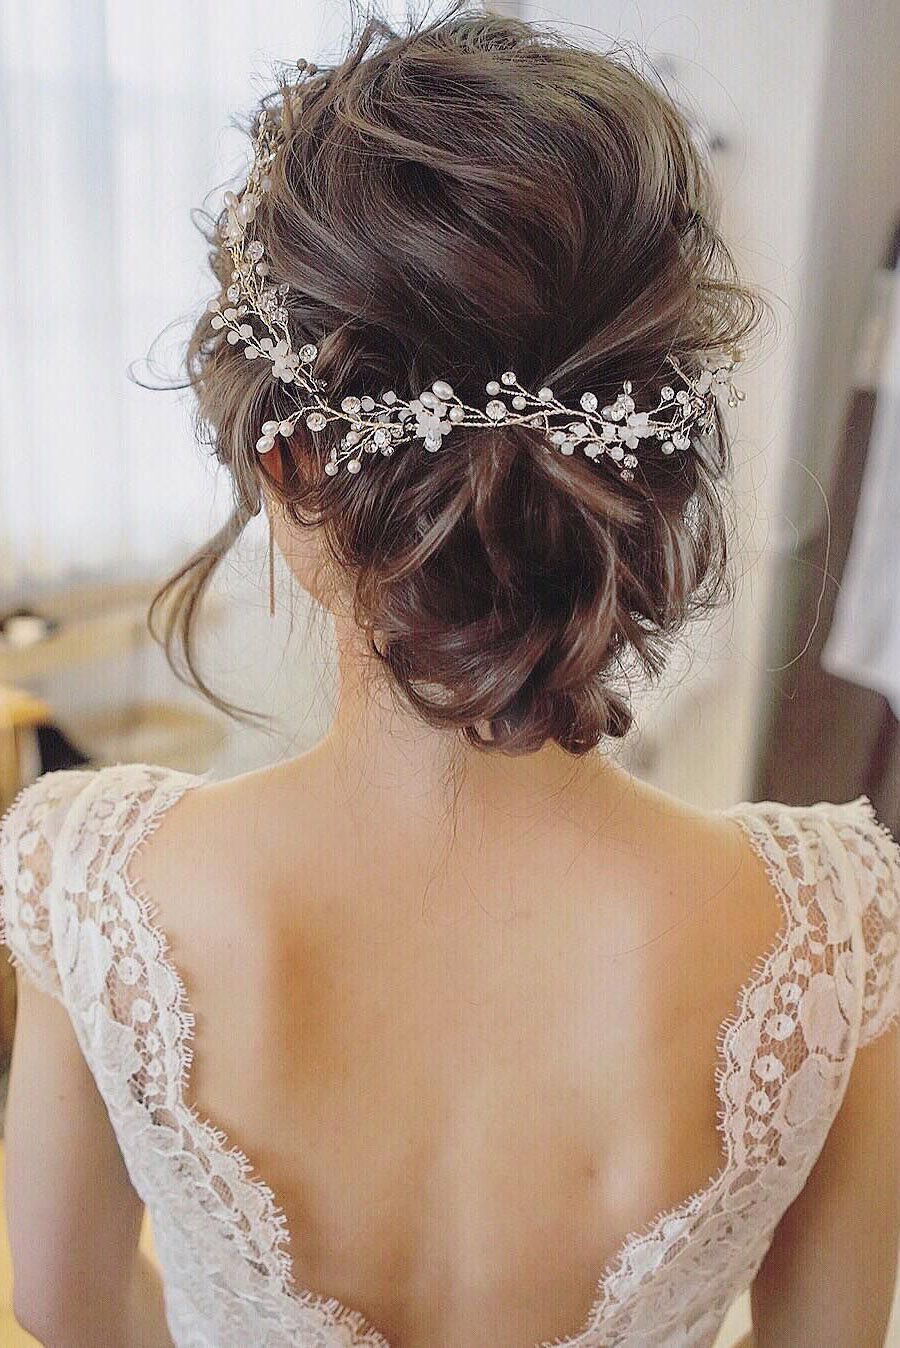 25 Chic Updo Wedding Hairstyles for All Brides #messyupdos